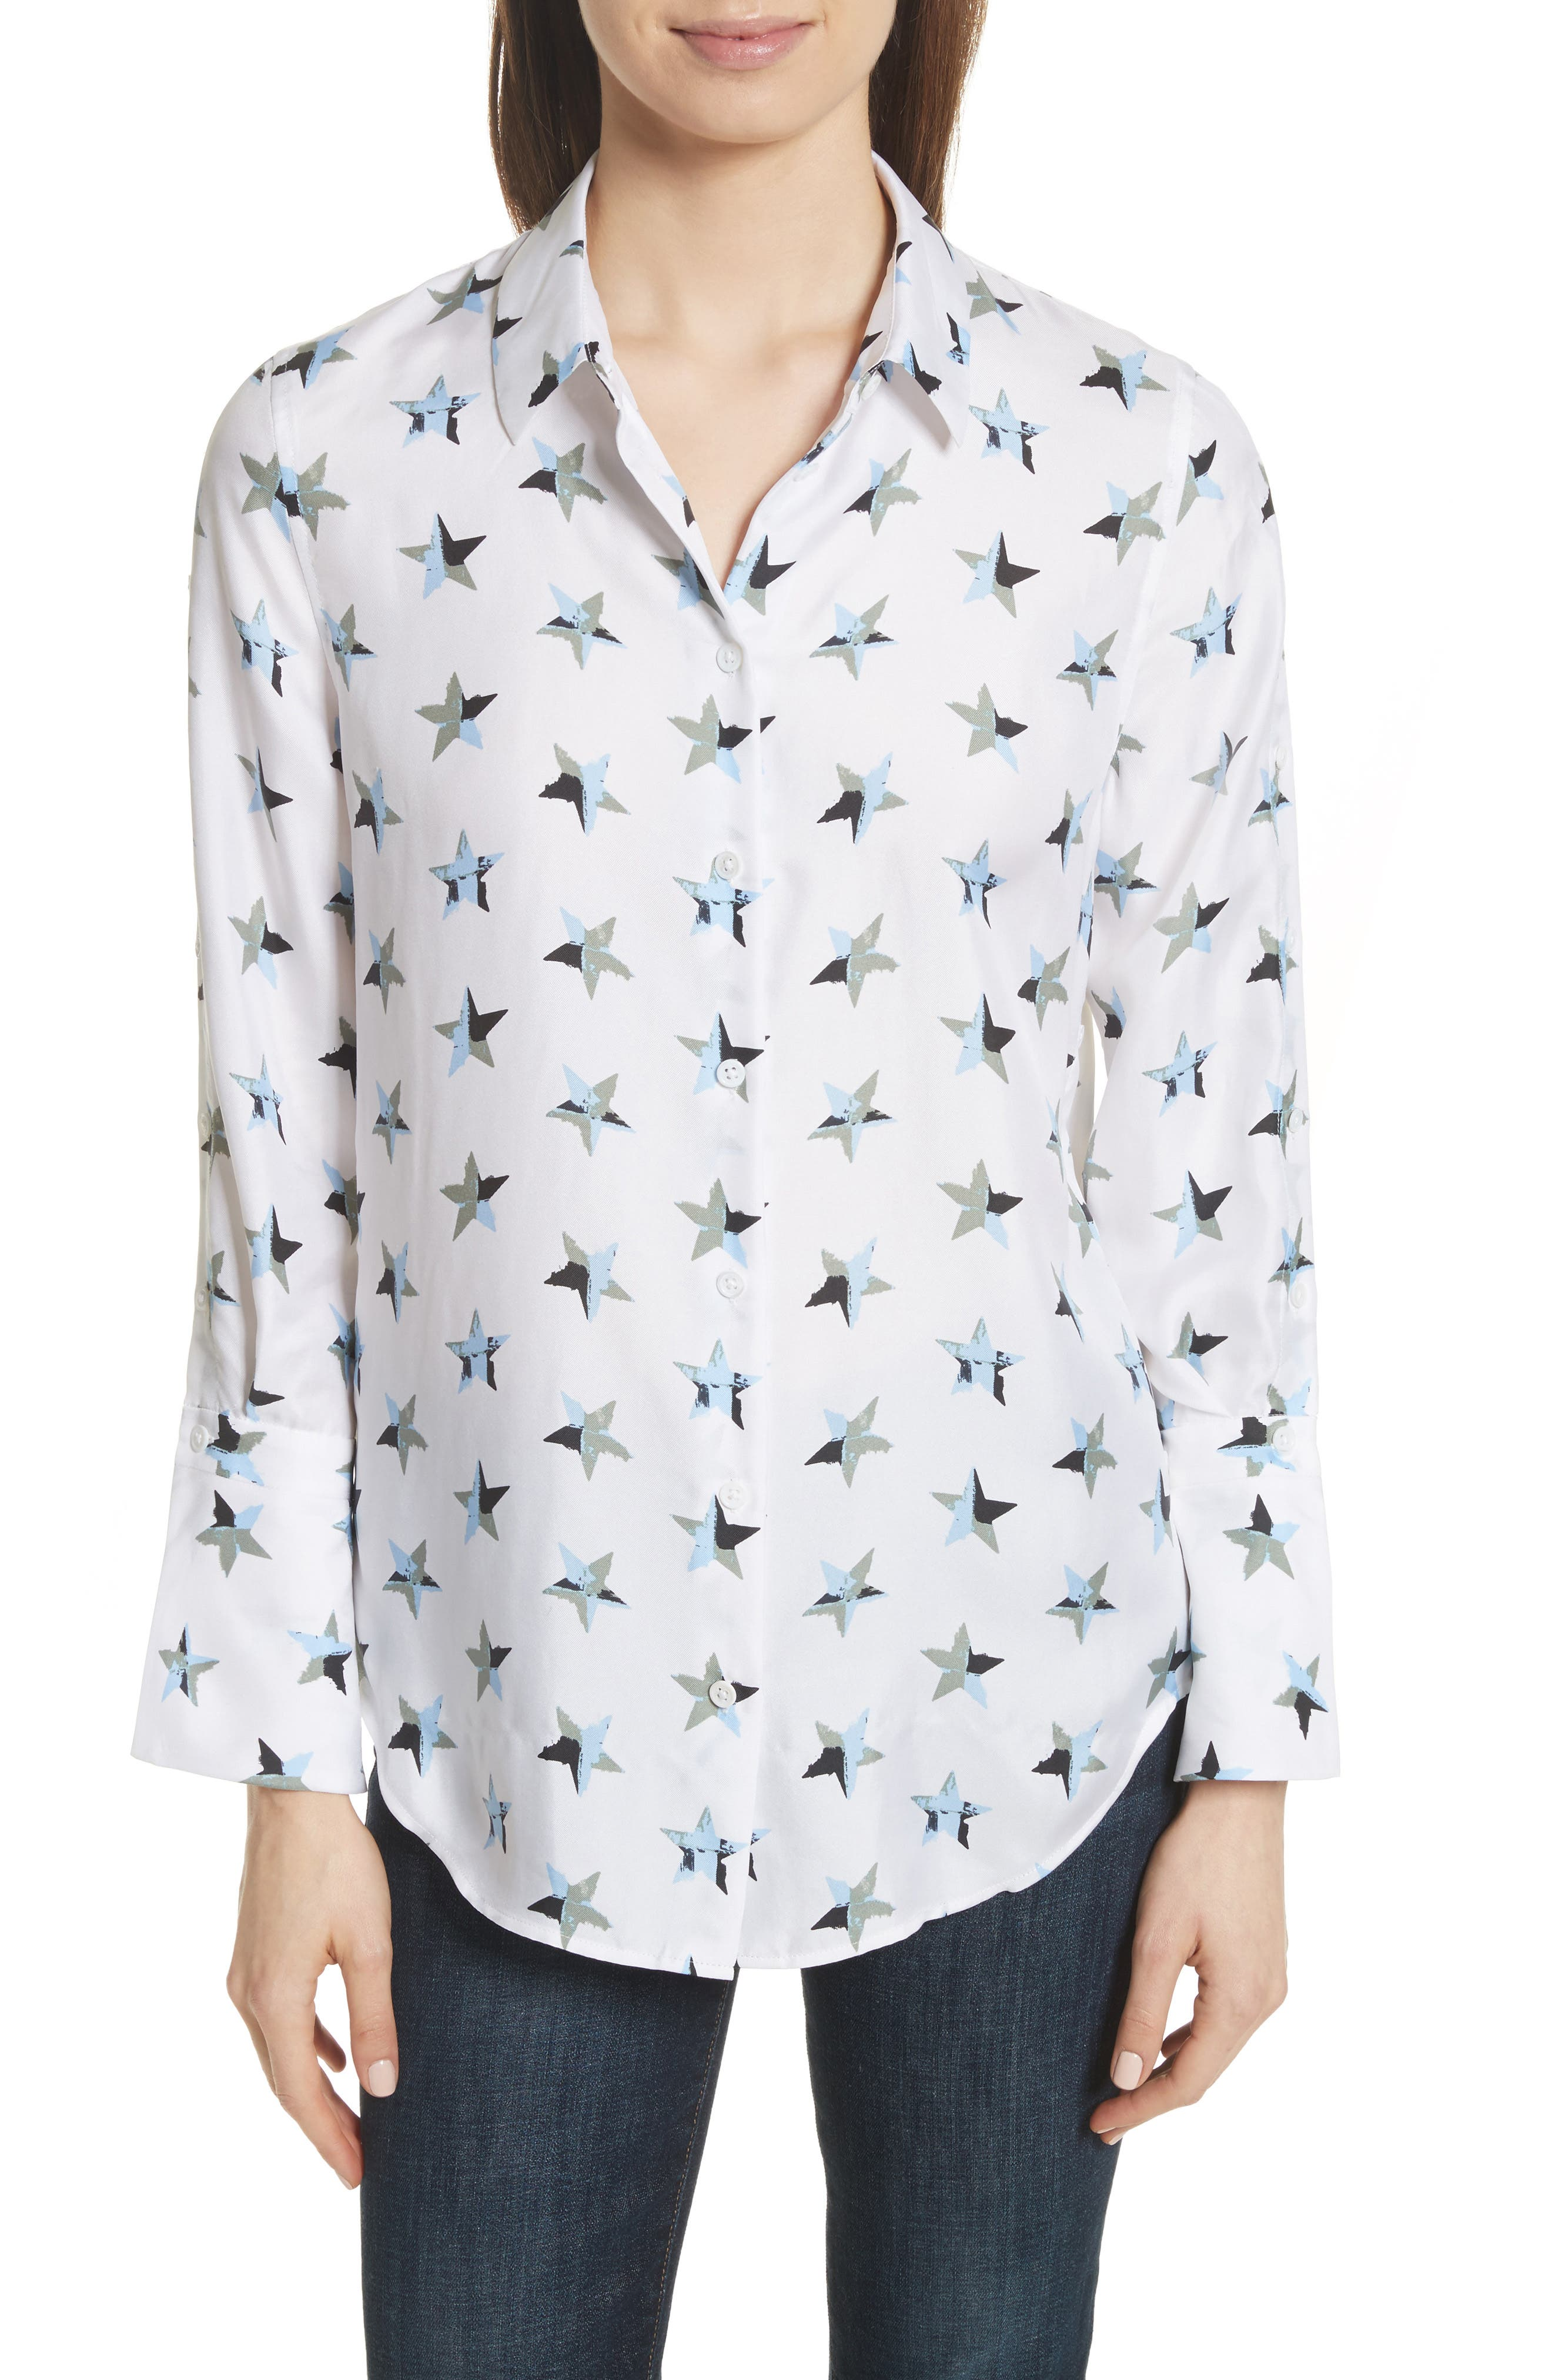 Rossi Button Detail Star Print Silk Shirt,                             Main thumbnail 1, color,                             Bright White Multi